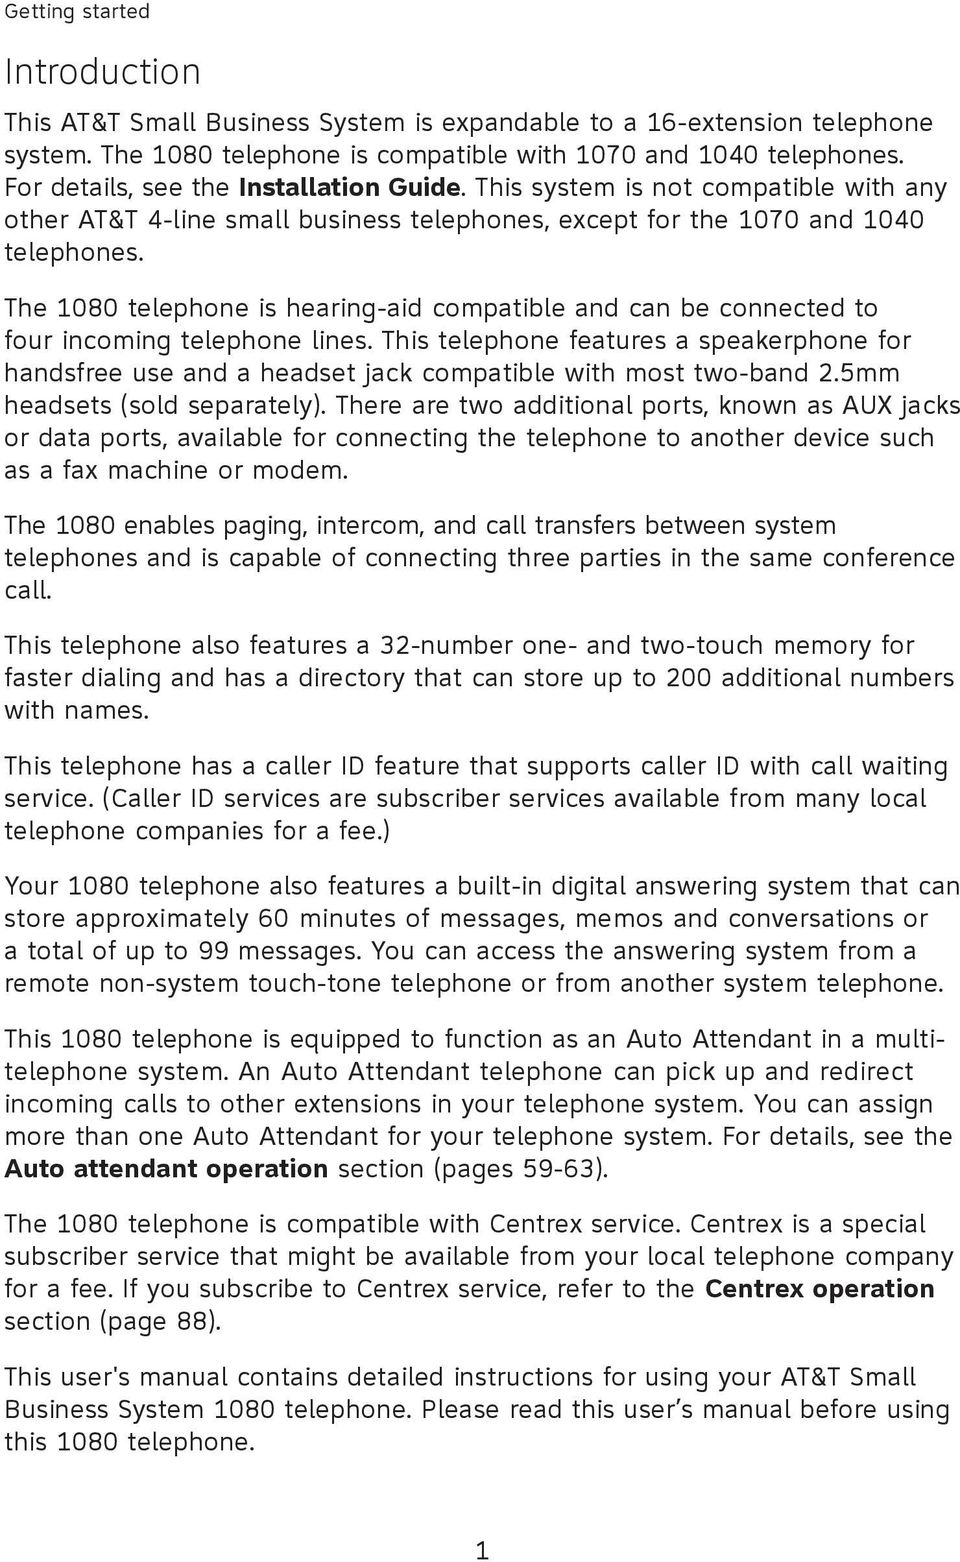 The 1080 telephone is hearing-aid compatible and can be connected to four incoming telephone lines.